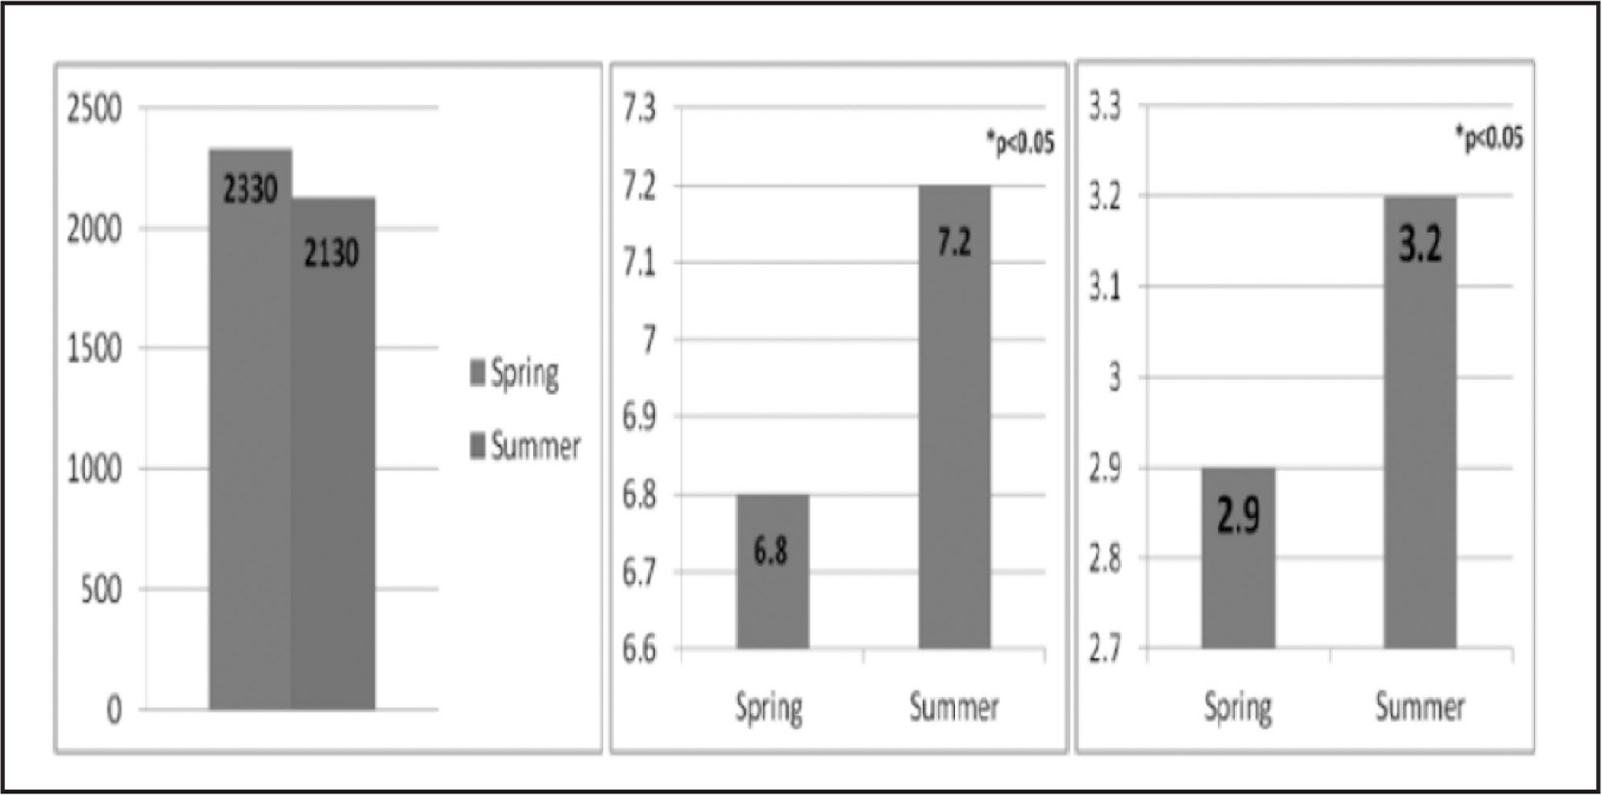 Process performance results for Plan-Do-Study-Act (PDSA) cycles 1 and 2. Image on the left refers to average practice questions; center image refers to average mastery; image on the right refers to average practice examinations.